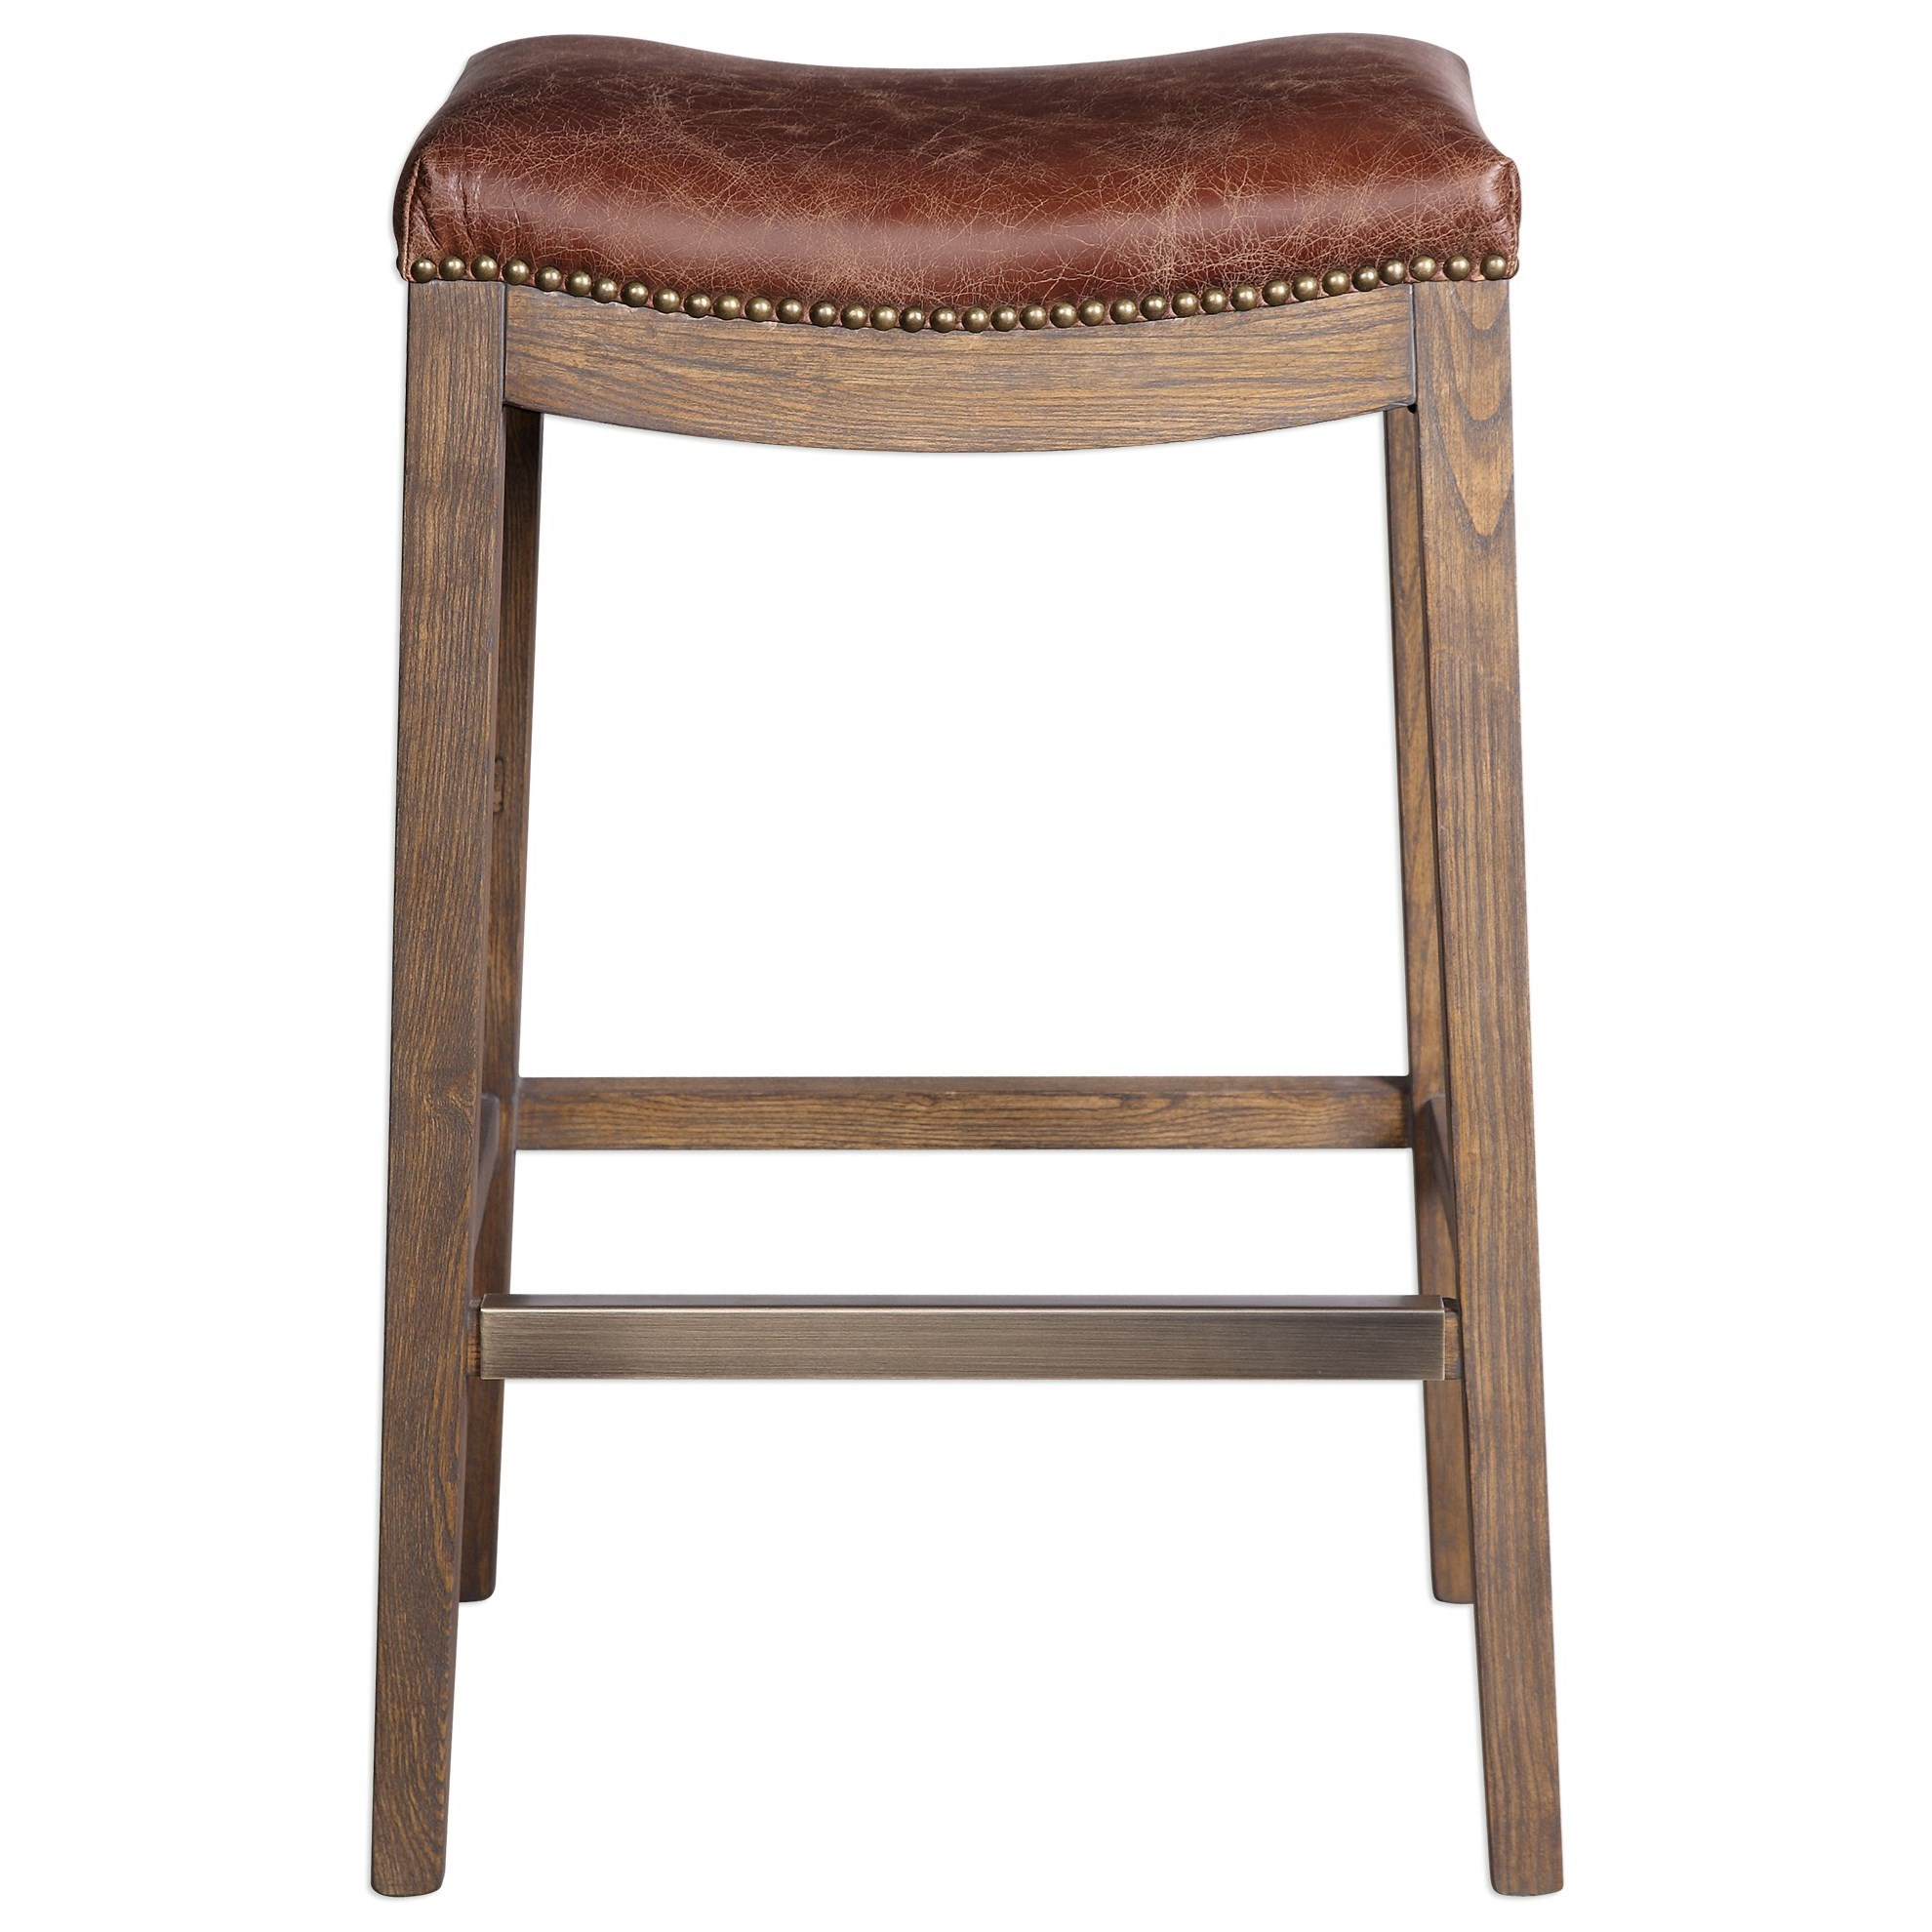 Uttermost Accent Furniture  Cochran Leather Bar Stool - Item Number: 23329